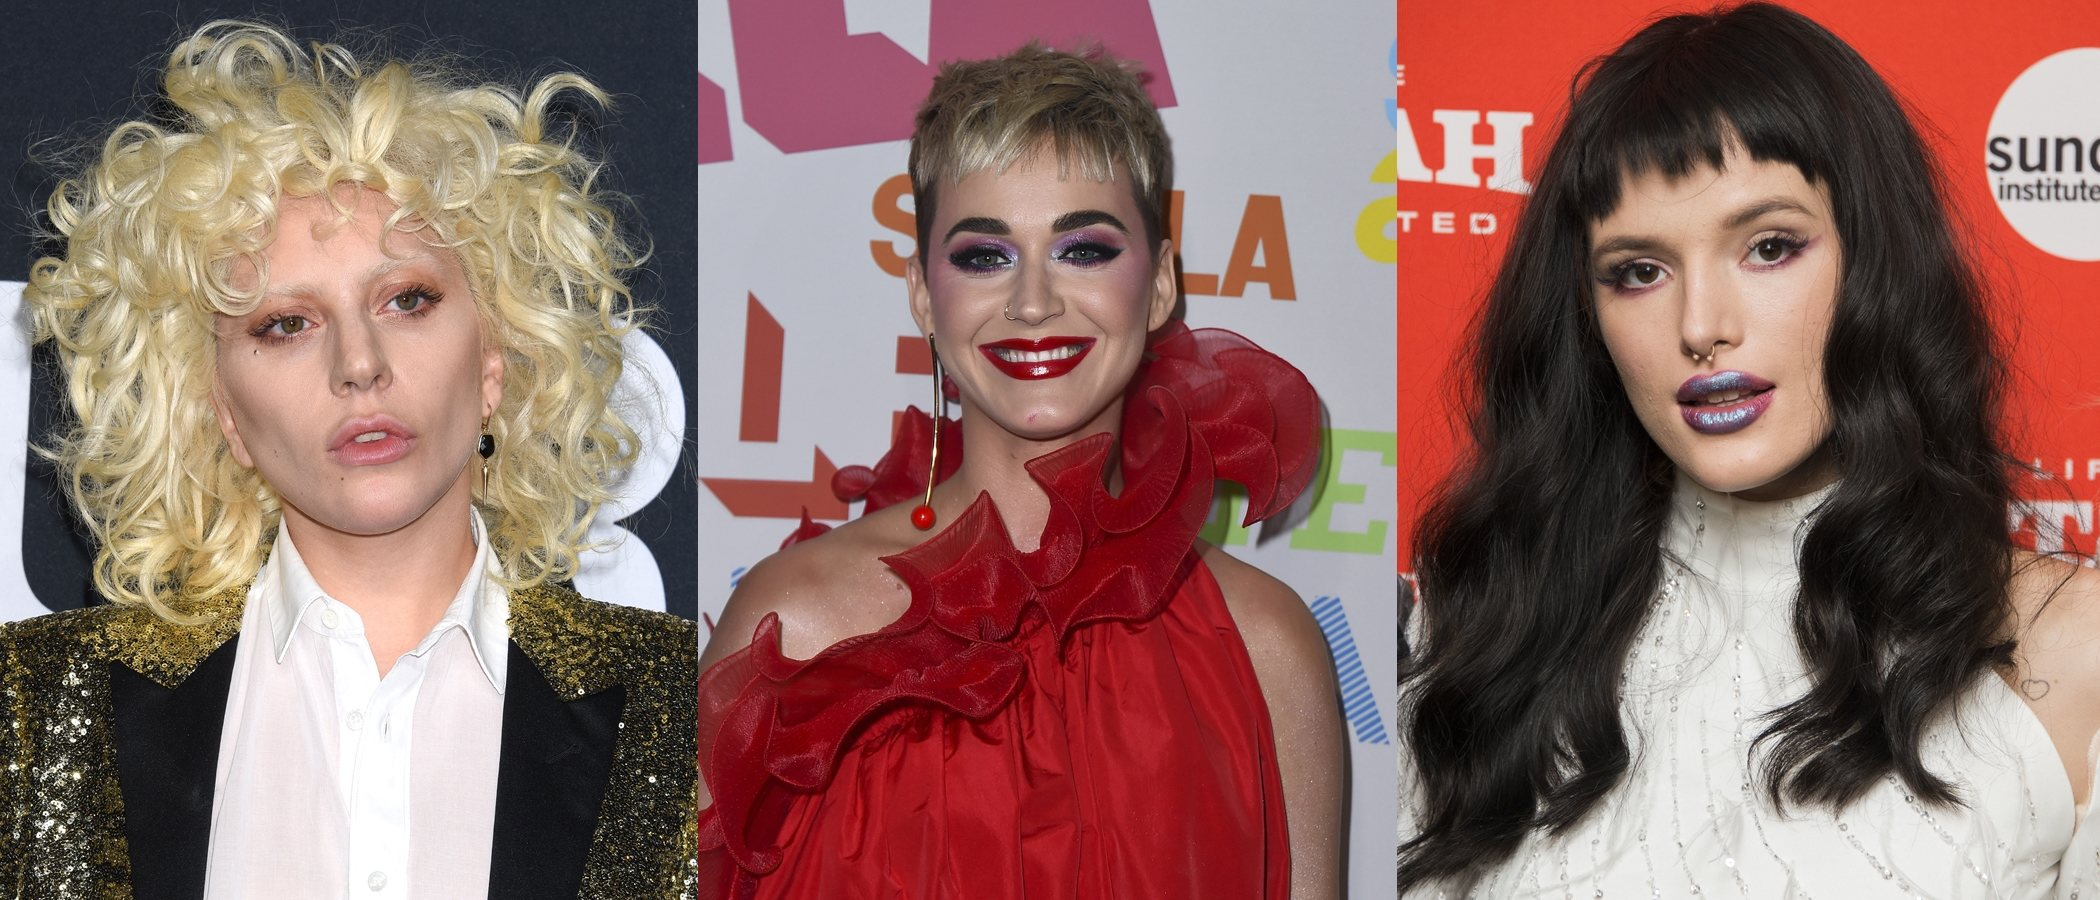 Maquillajes de celebrities que parecen un look de Halloween